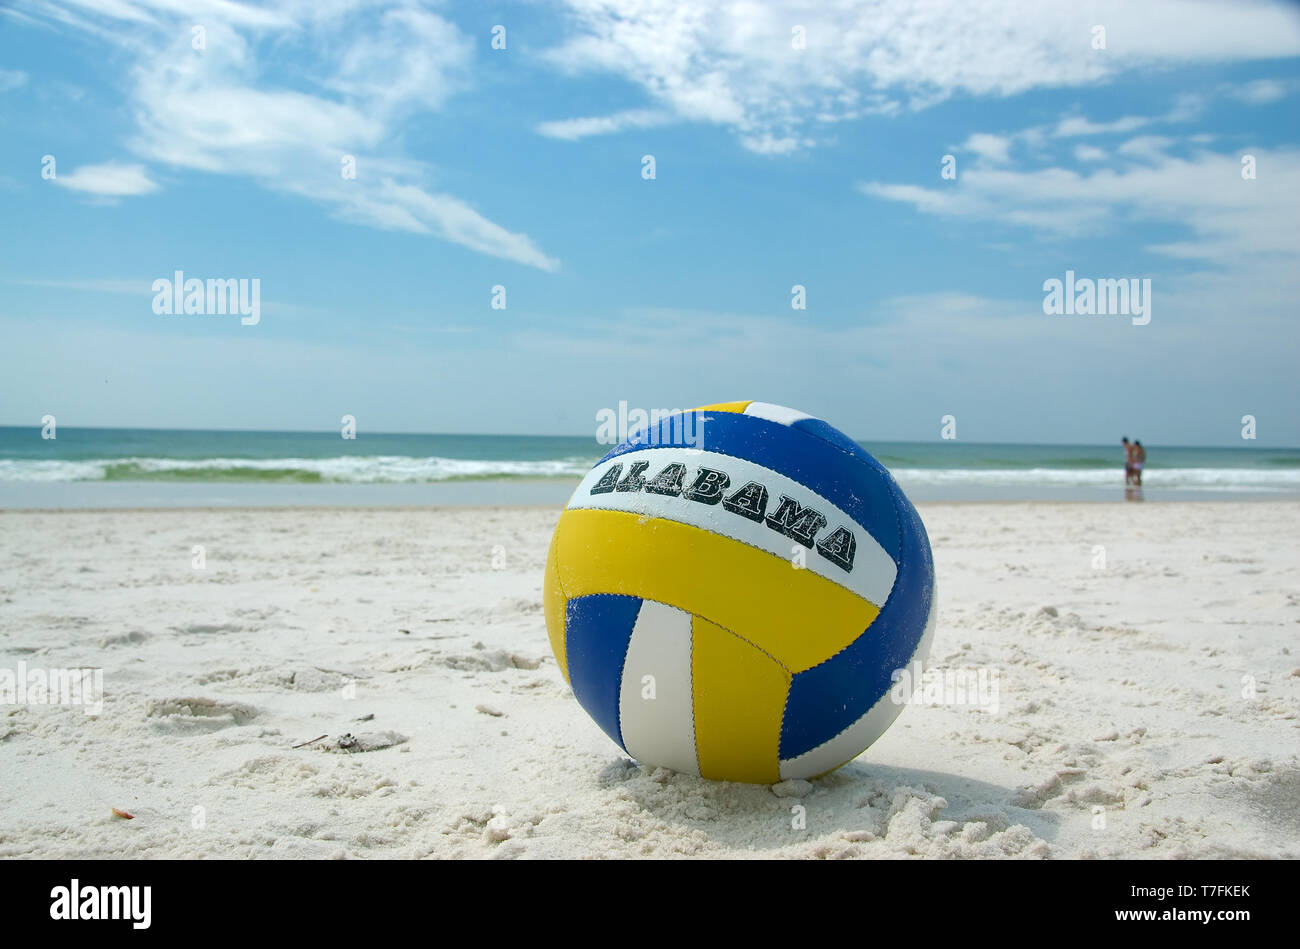 A volleyball on the beach at Gulf State Park, Gulf Shores, Alabama, USA. Stock Photo